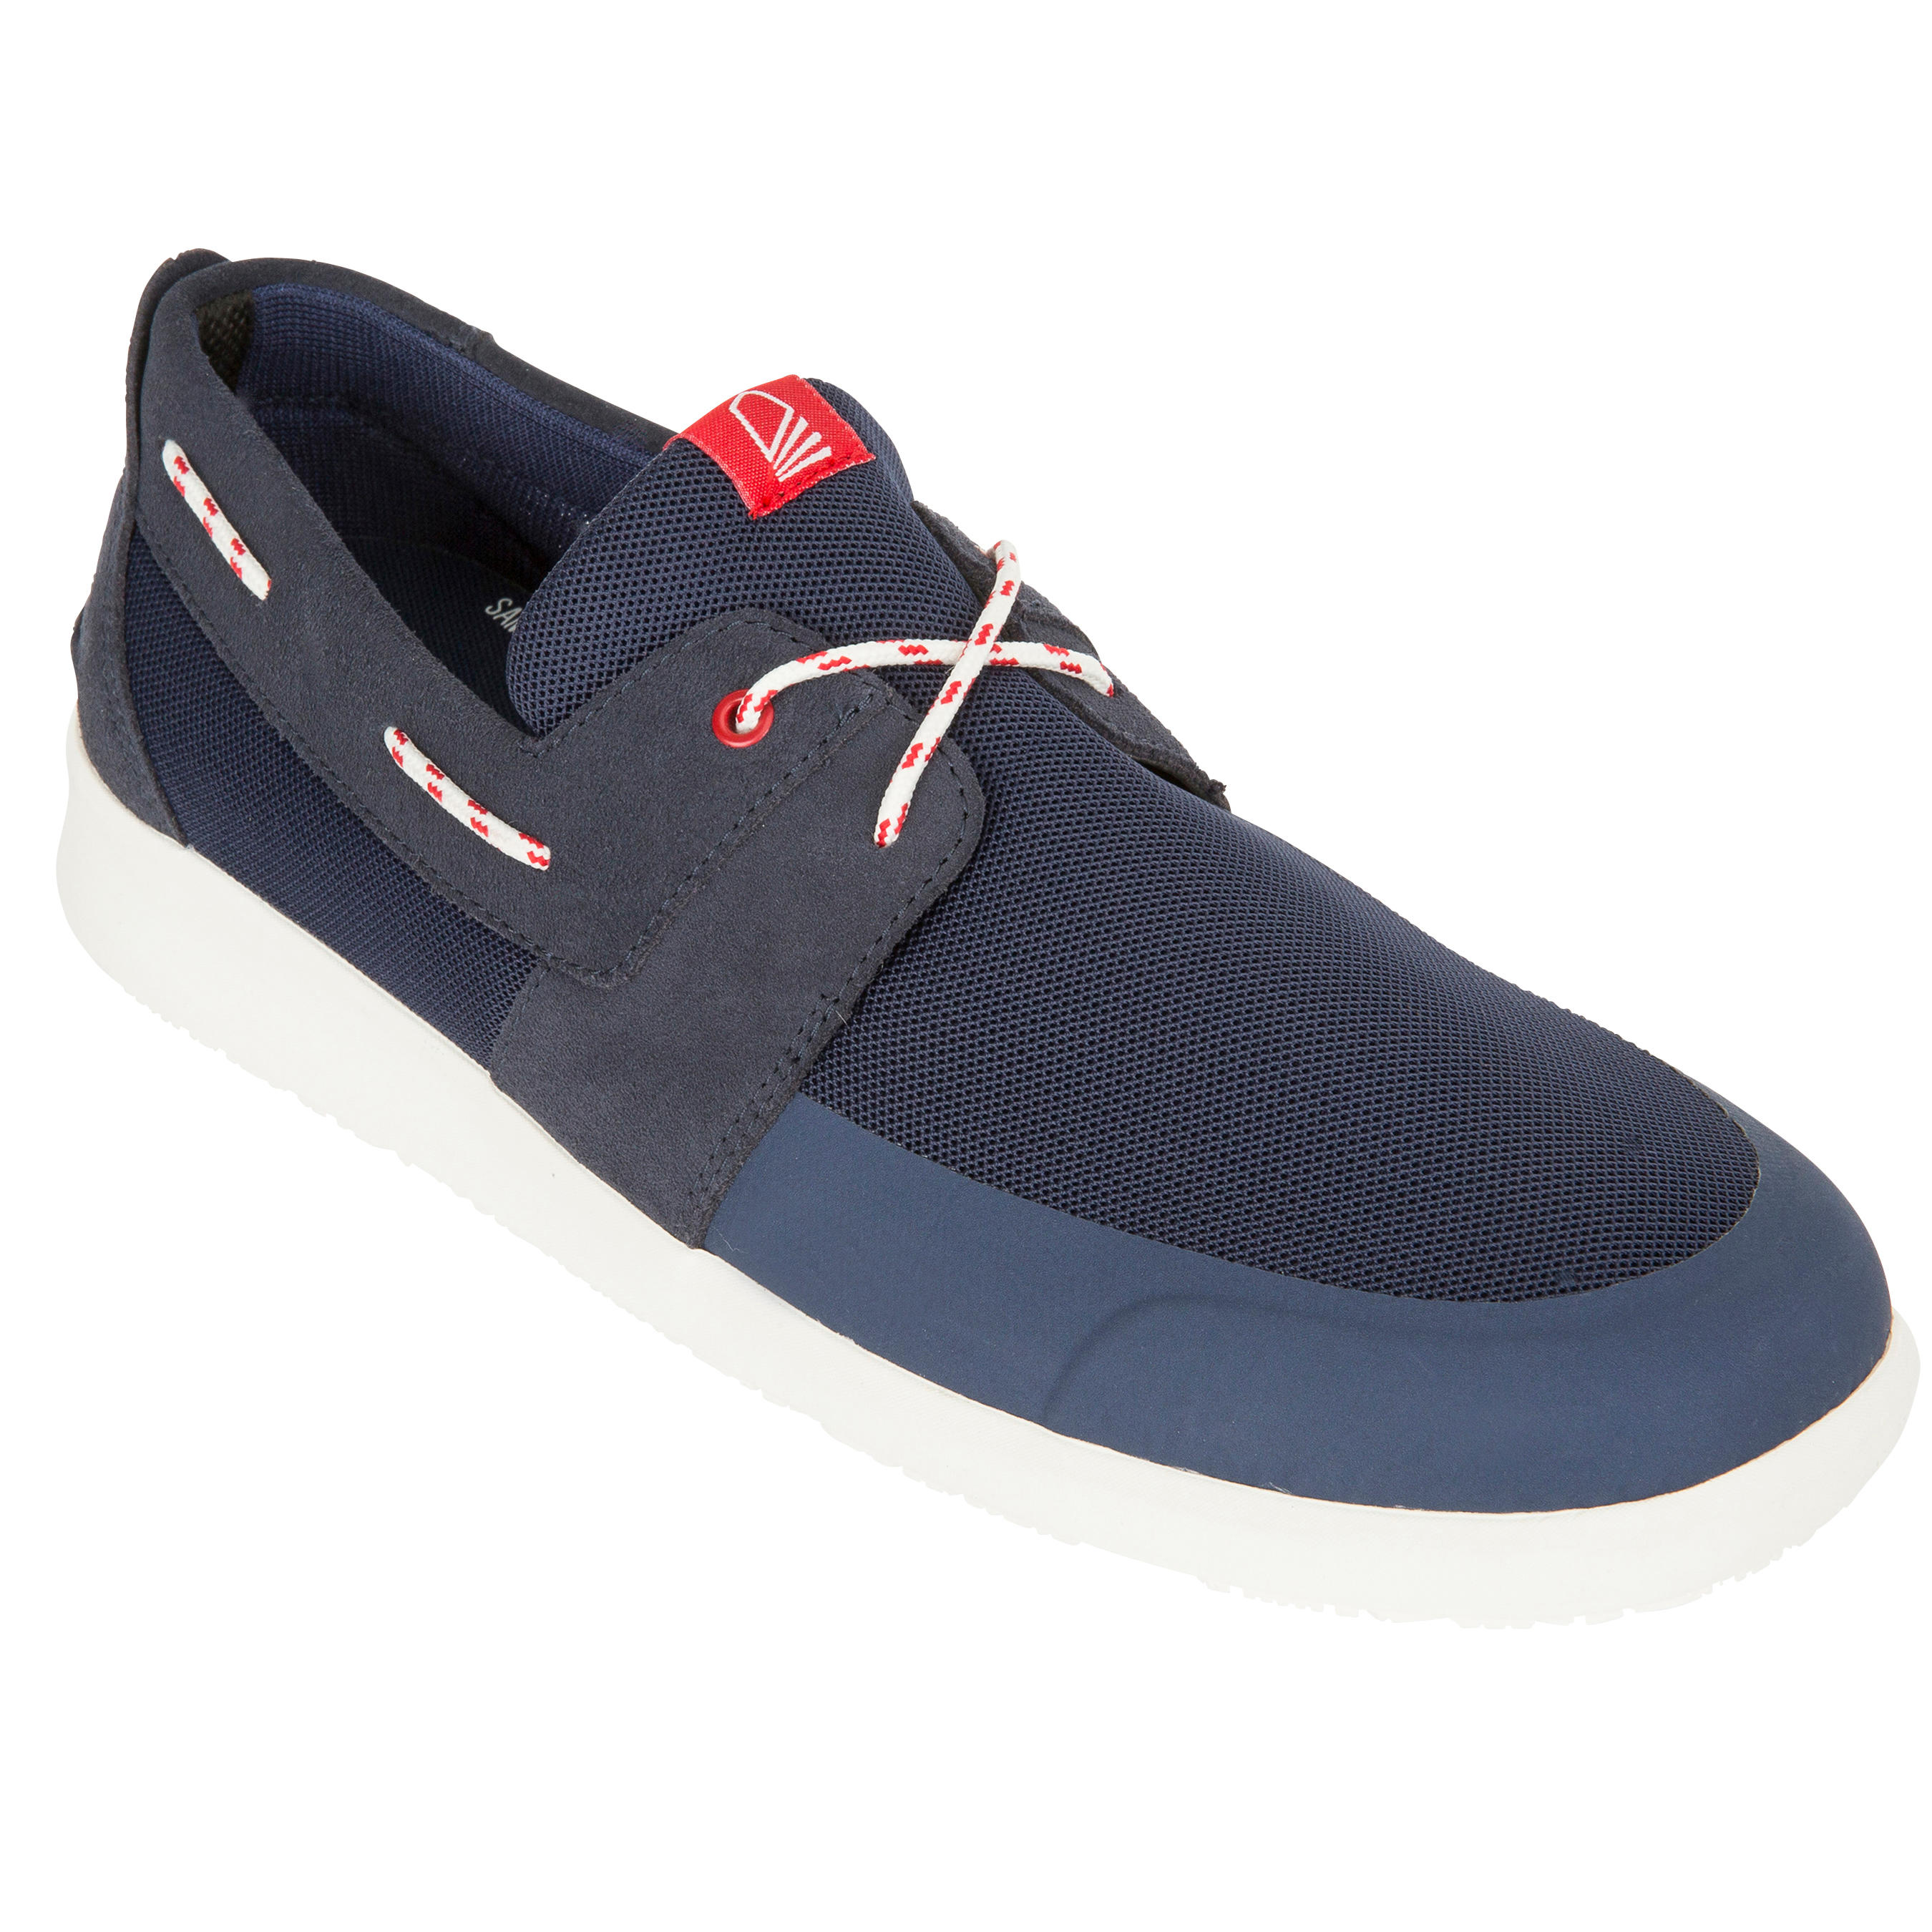 Sailing 100 Men's Boat Shoes - Dark Blue